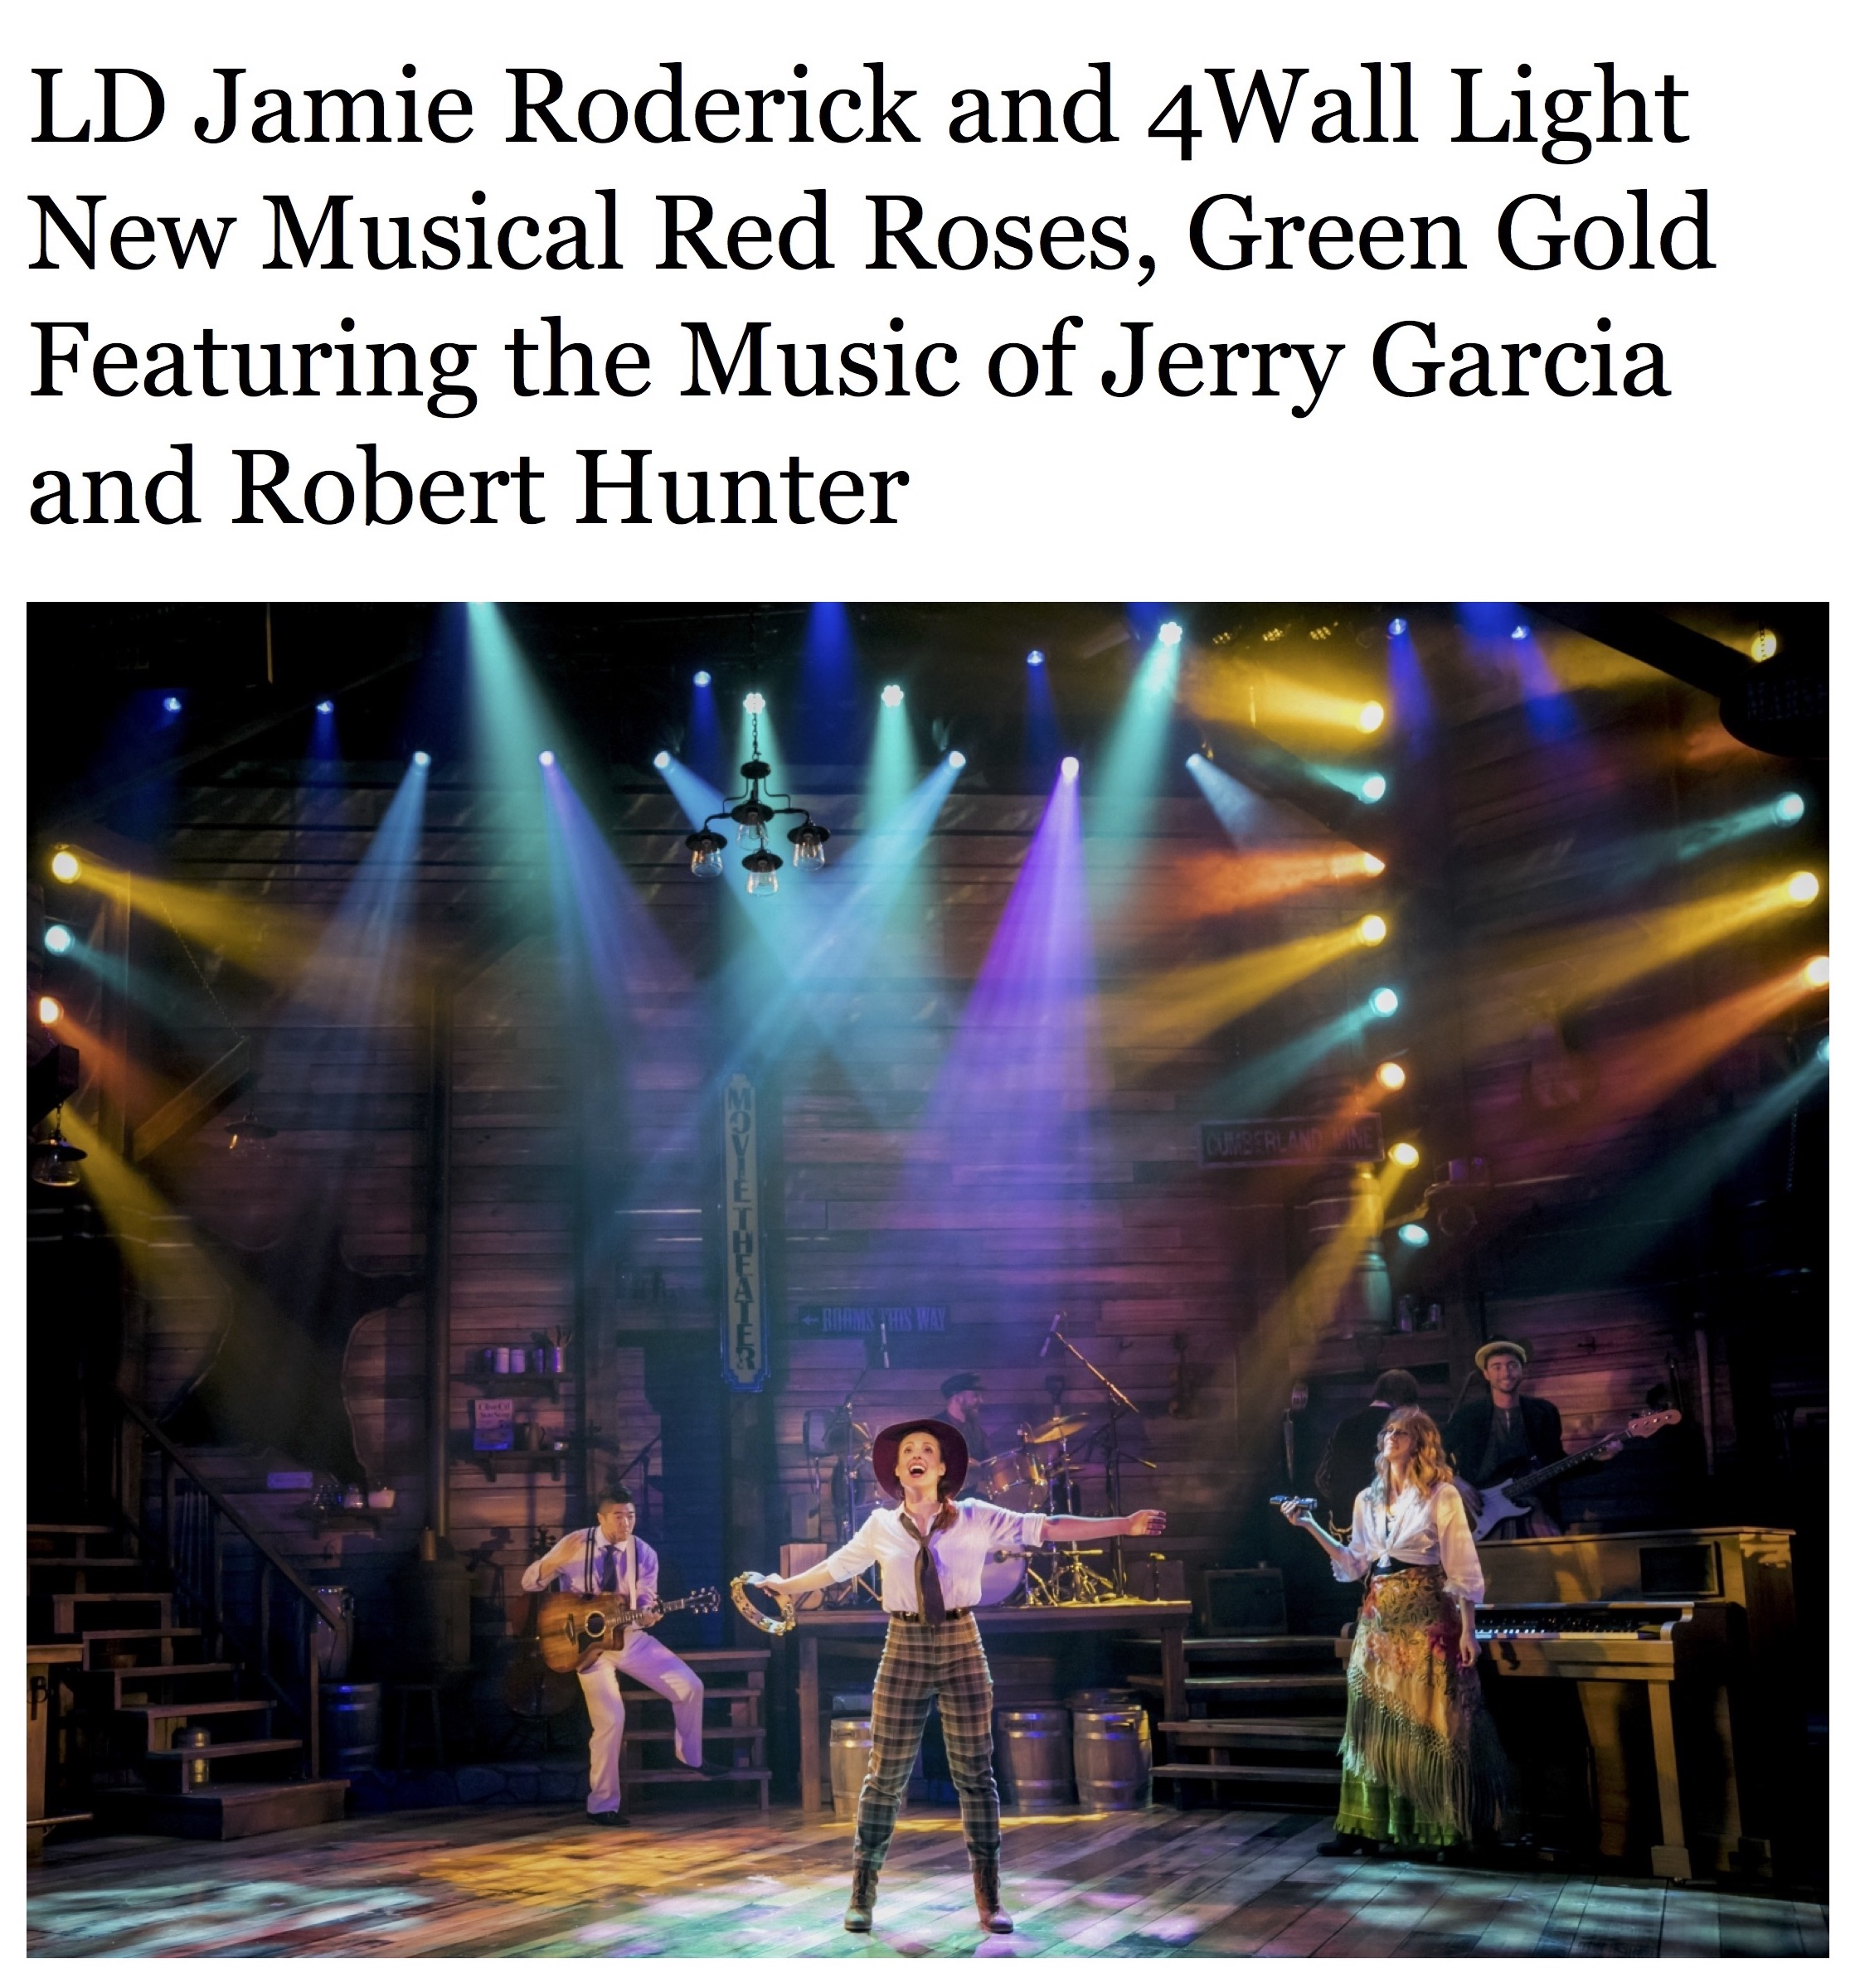 https://www.4wall.com/about/press/ld-jamie-roderick-and-4wall-light-red-roses-green-gold-musical-